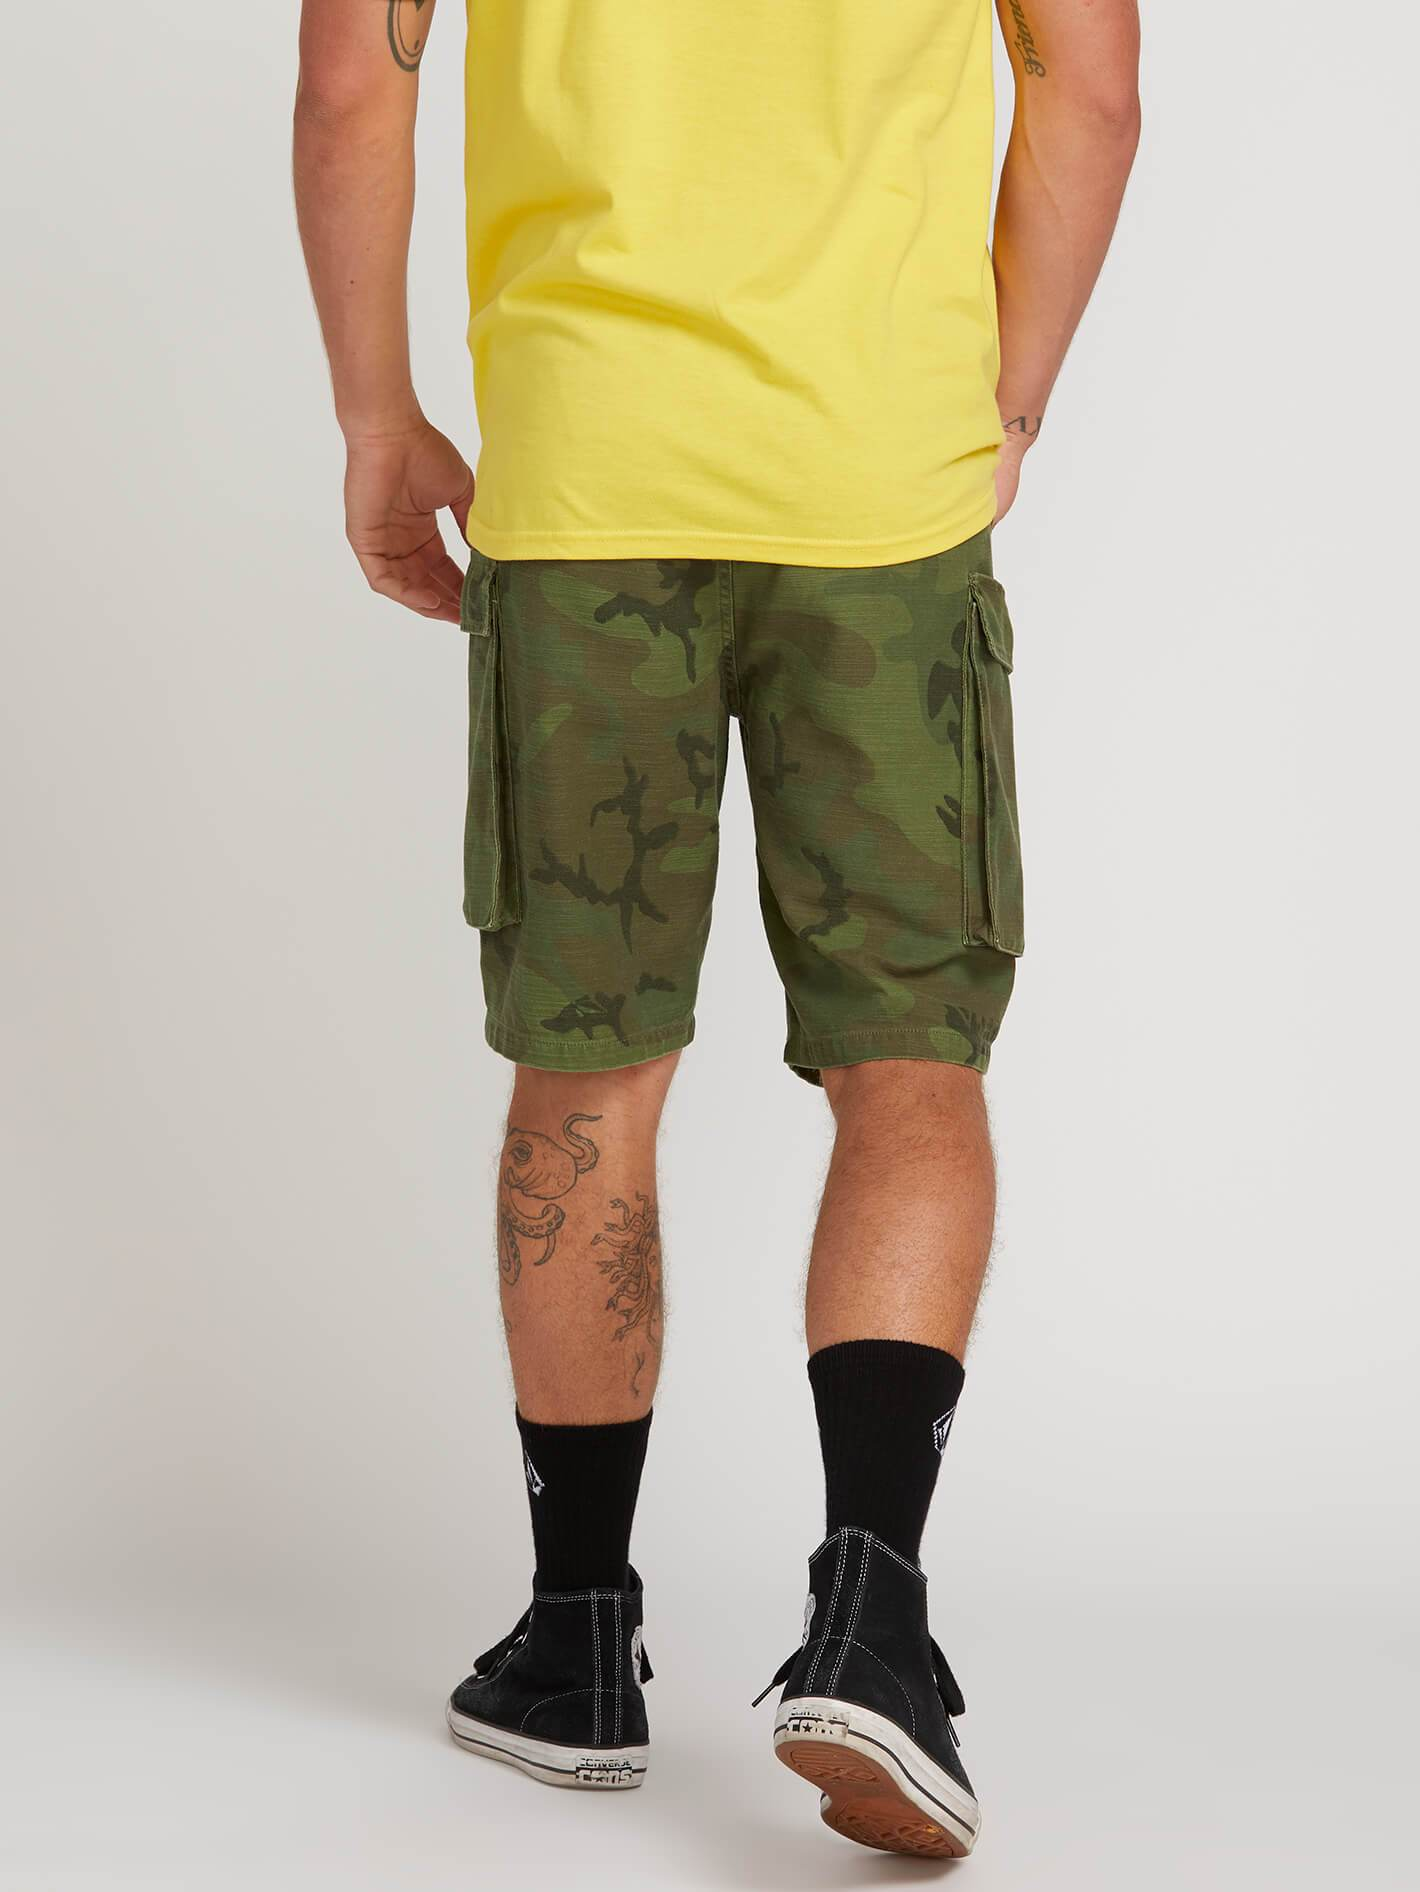 26d7a9bb3b Gritter Cargo Shorts - Camouflage in CAMOUFLAGE - Alternative View